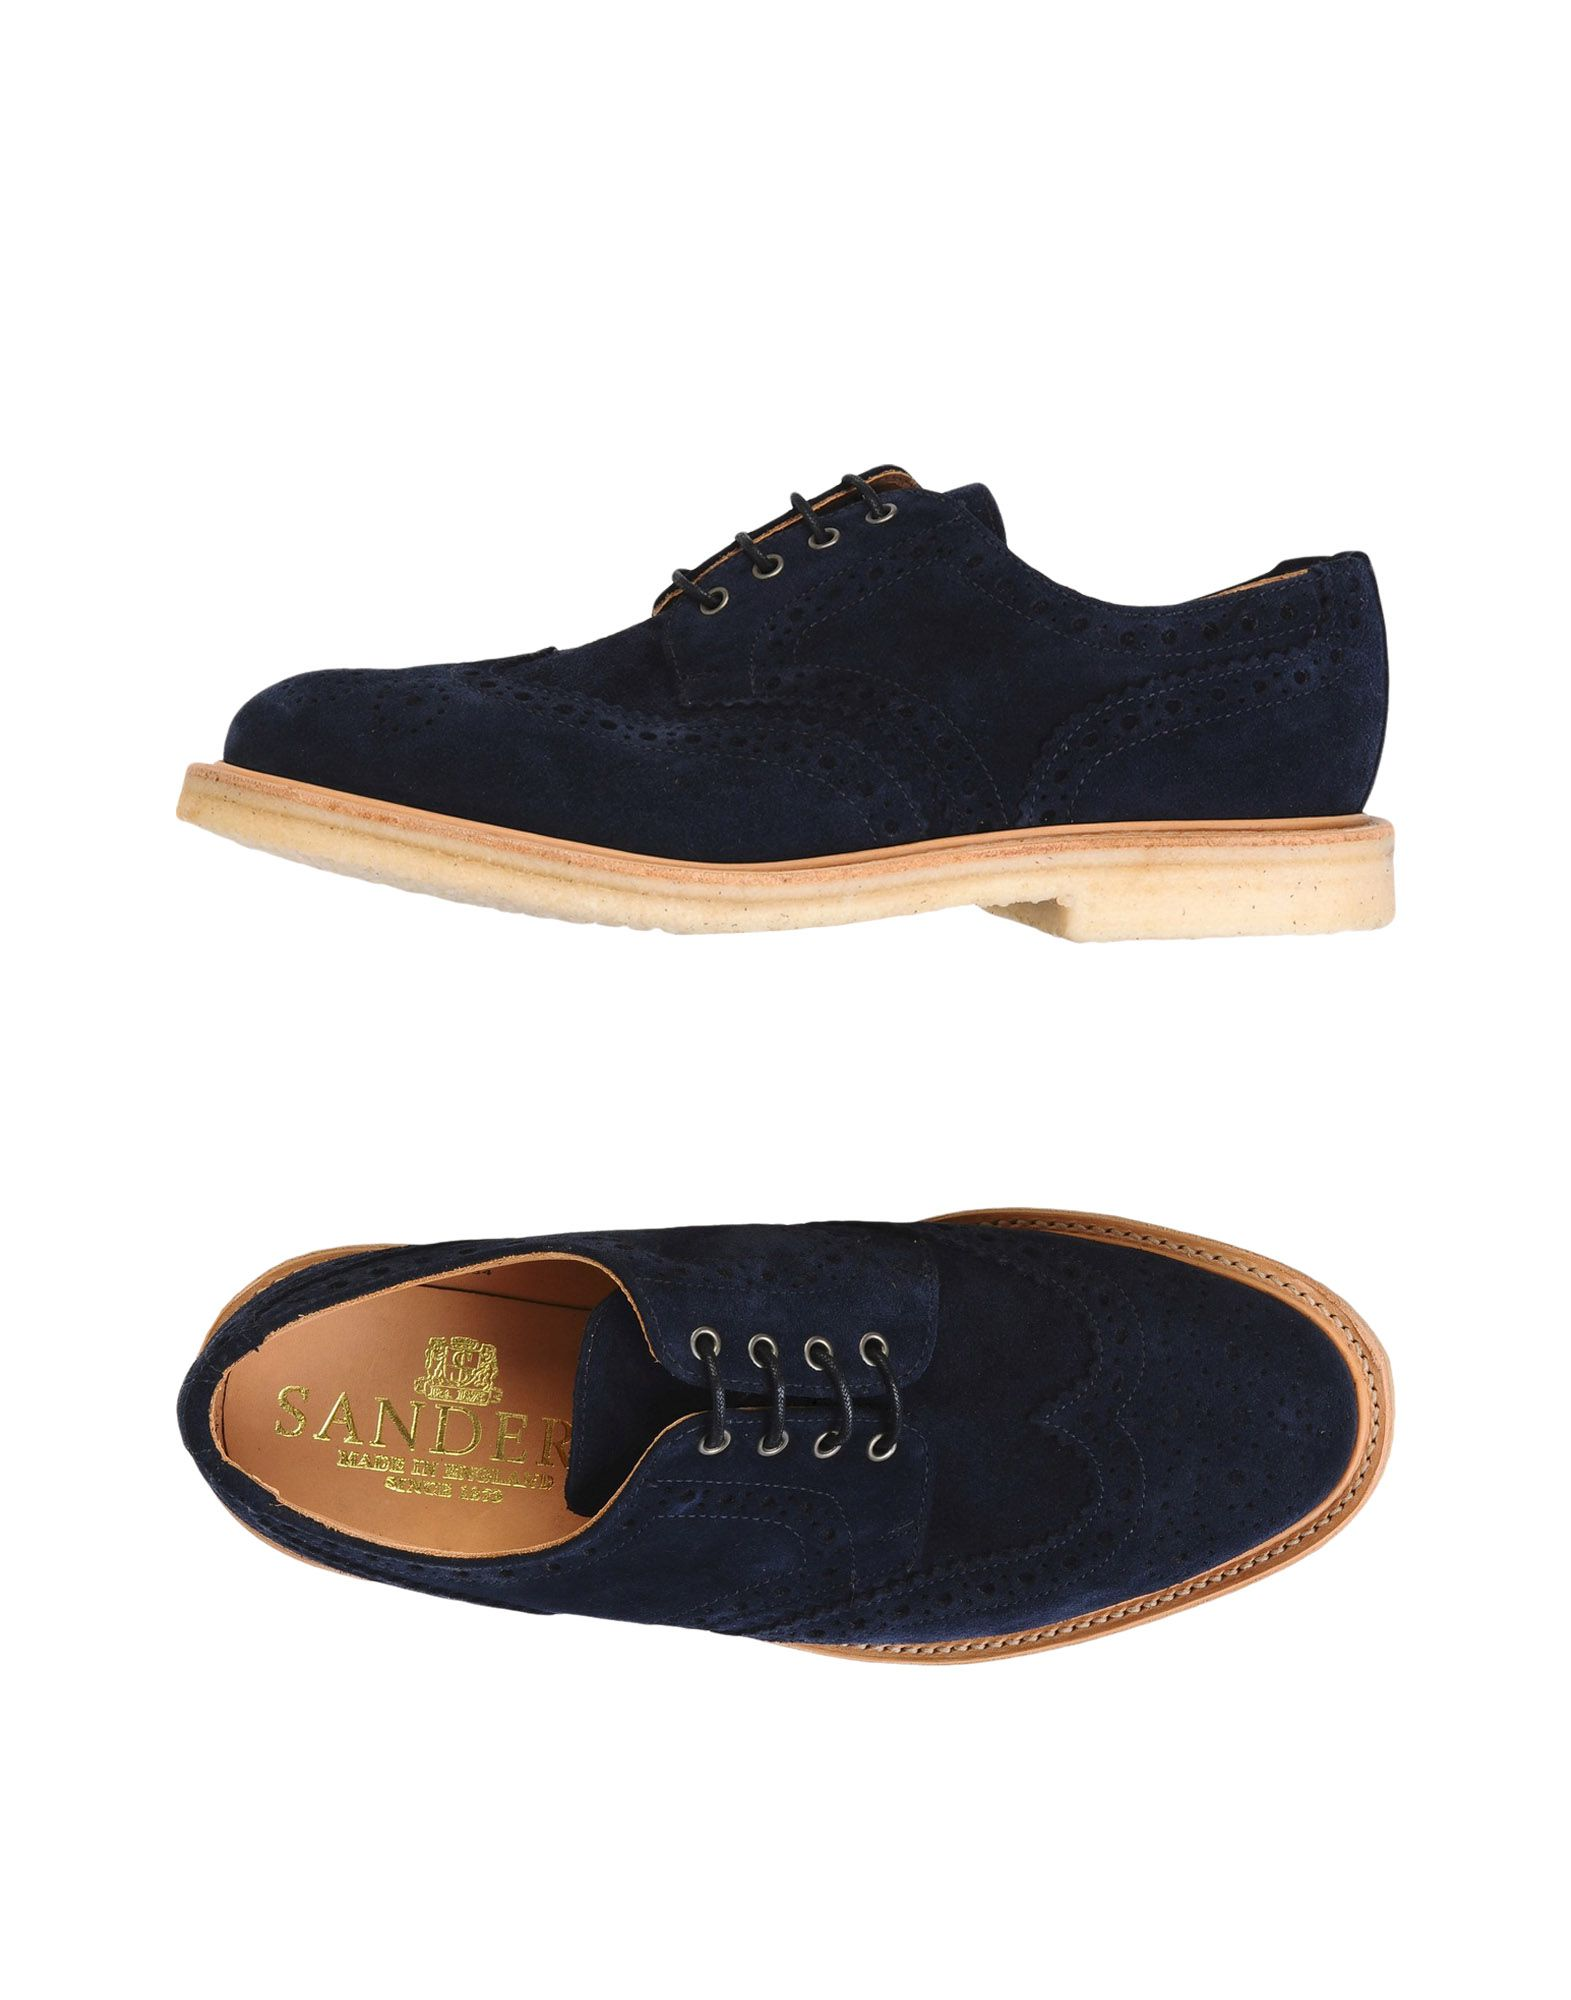 Stringate Sander's Olly -  Navy Suede Brogue Gibson, Rubber Sole - Uomo - 11458084OS